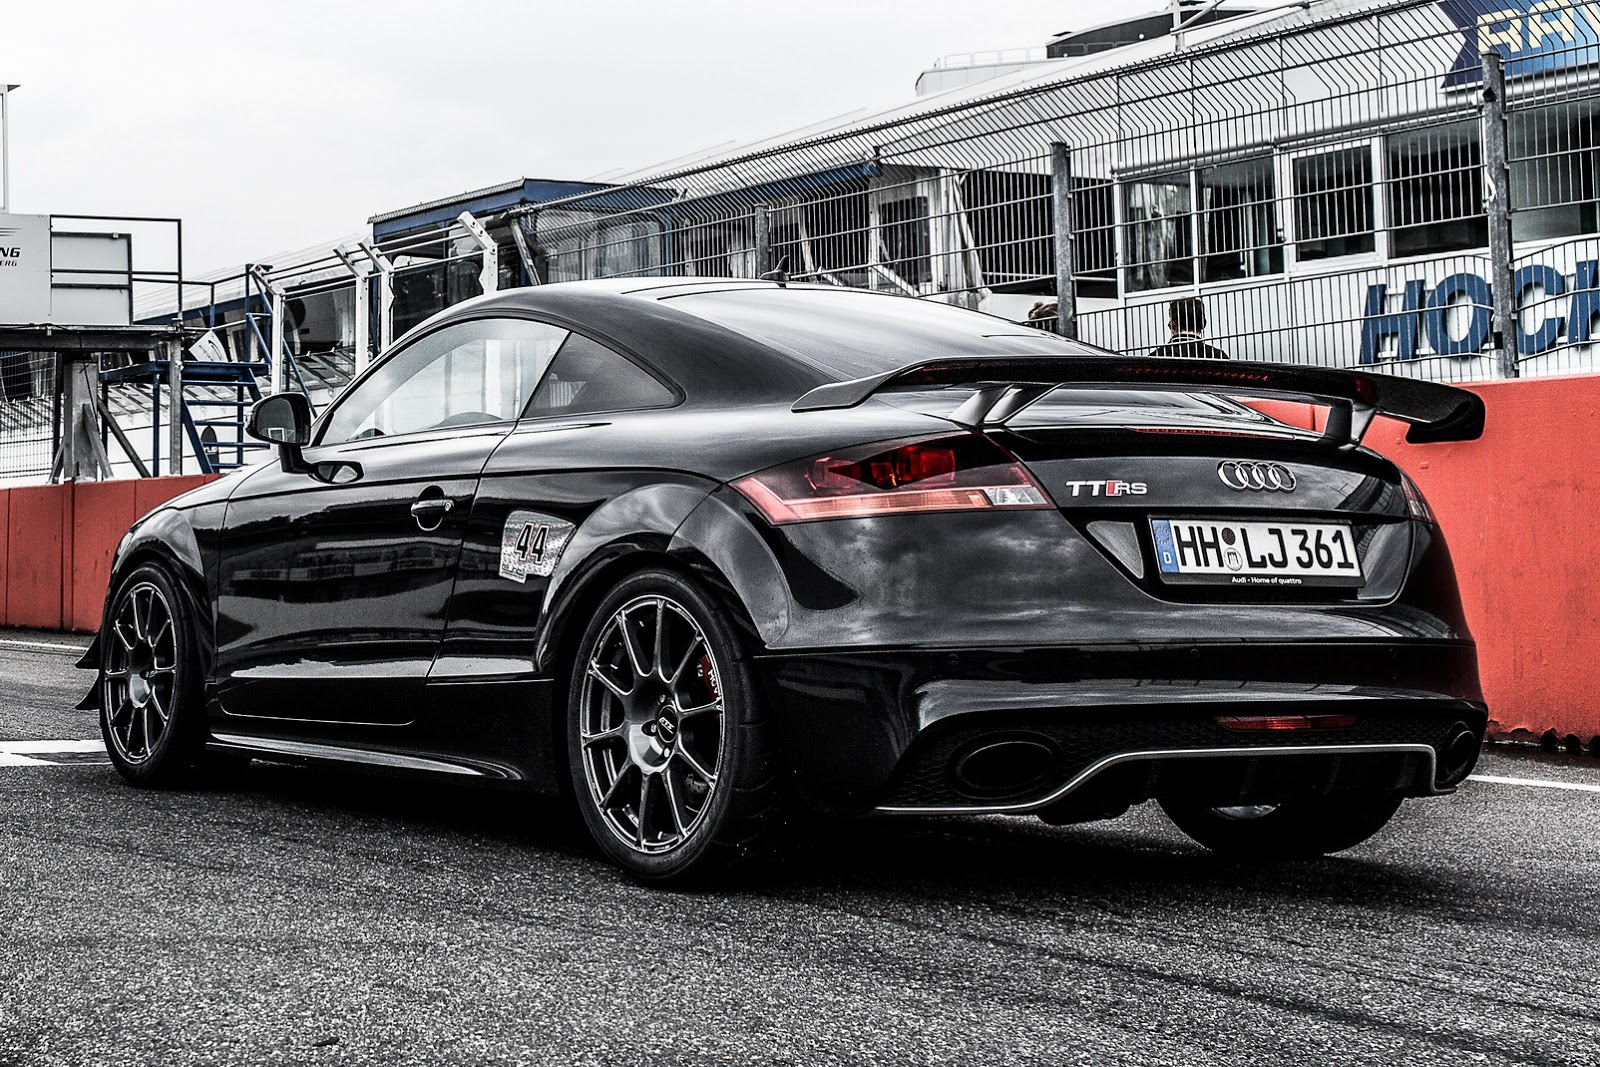 Hperformance Breathes New Life Into Old Audi Tt Rs Carscoops